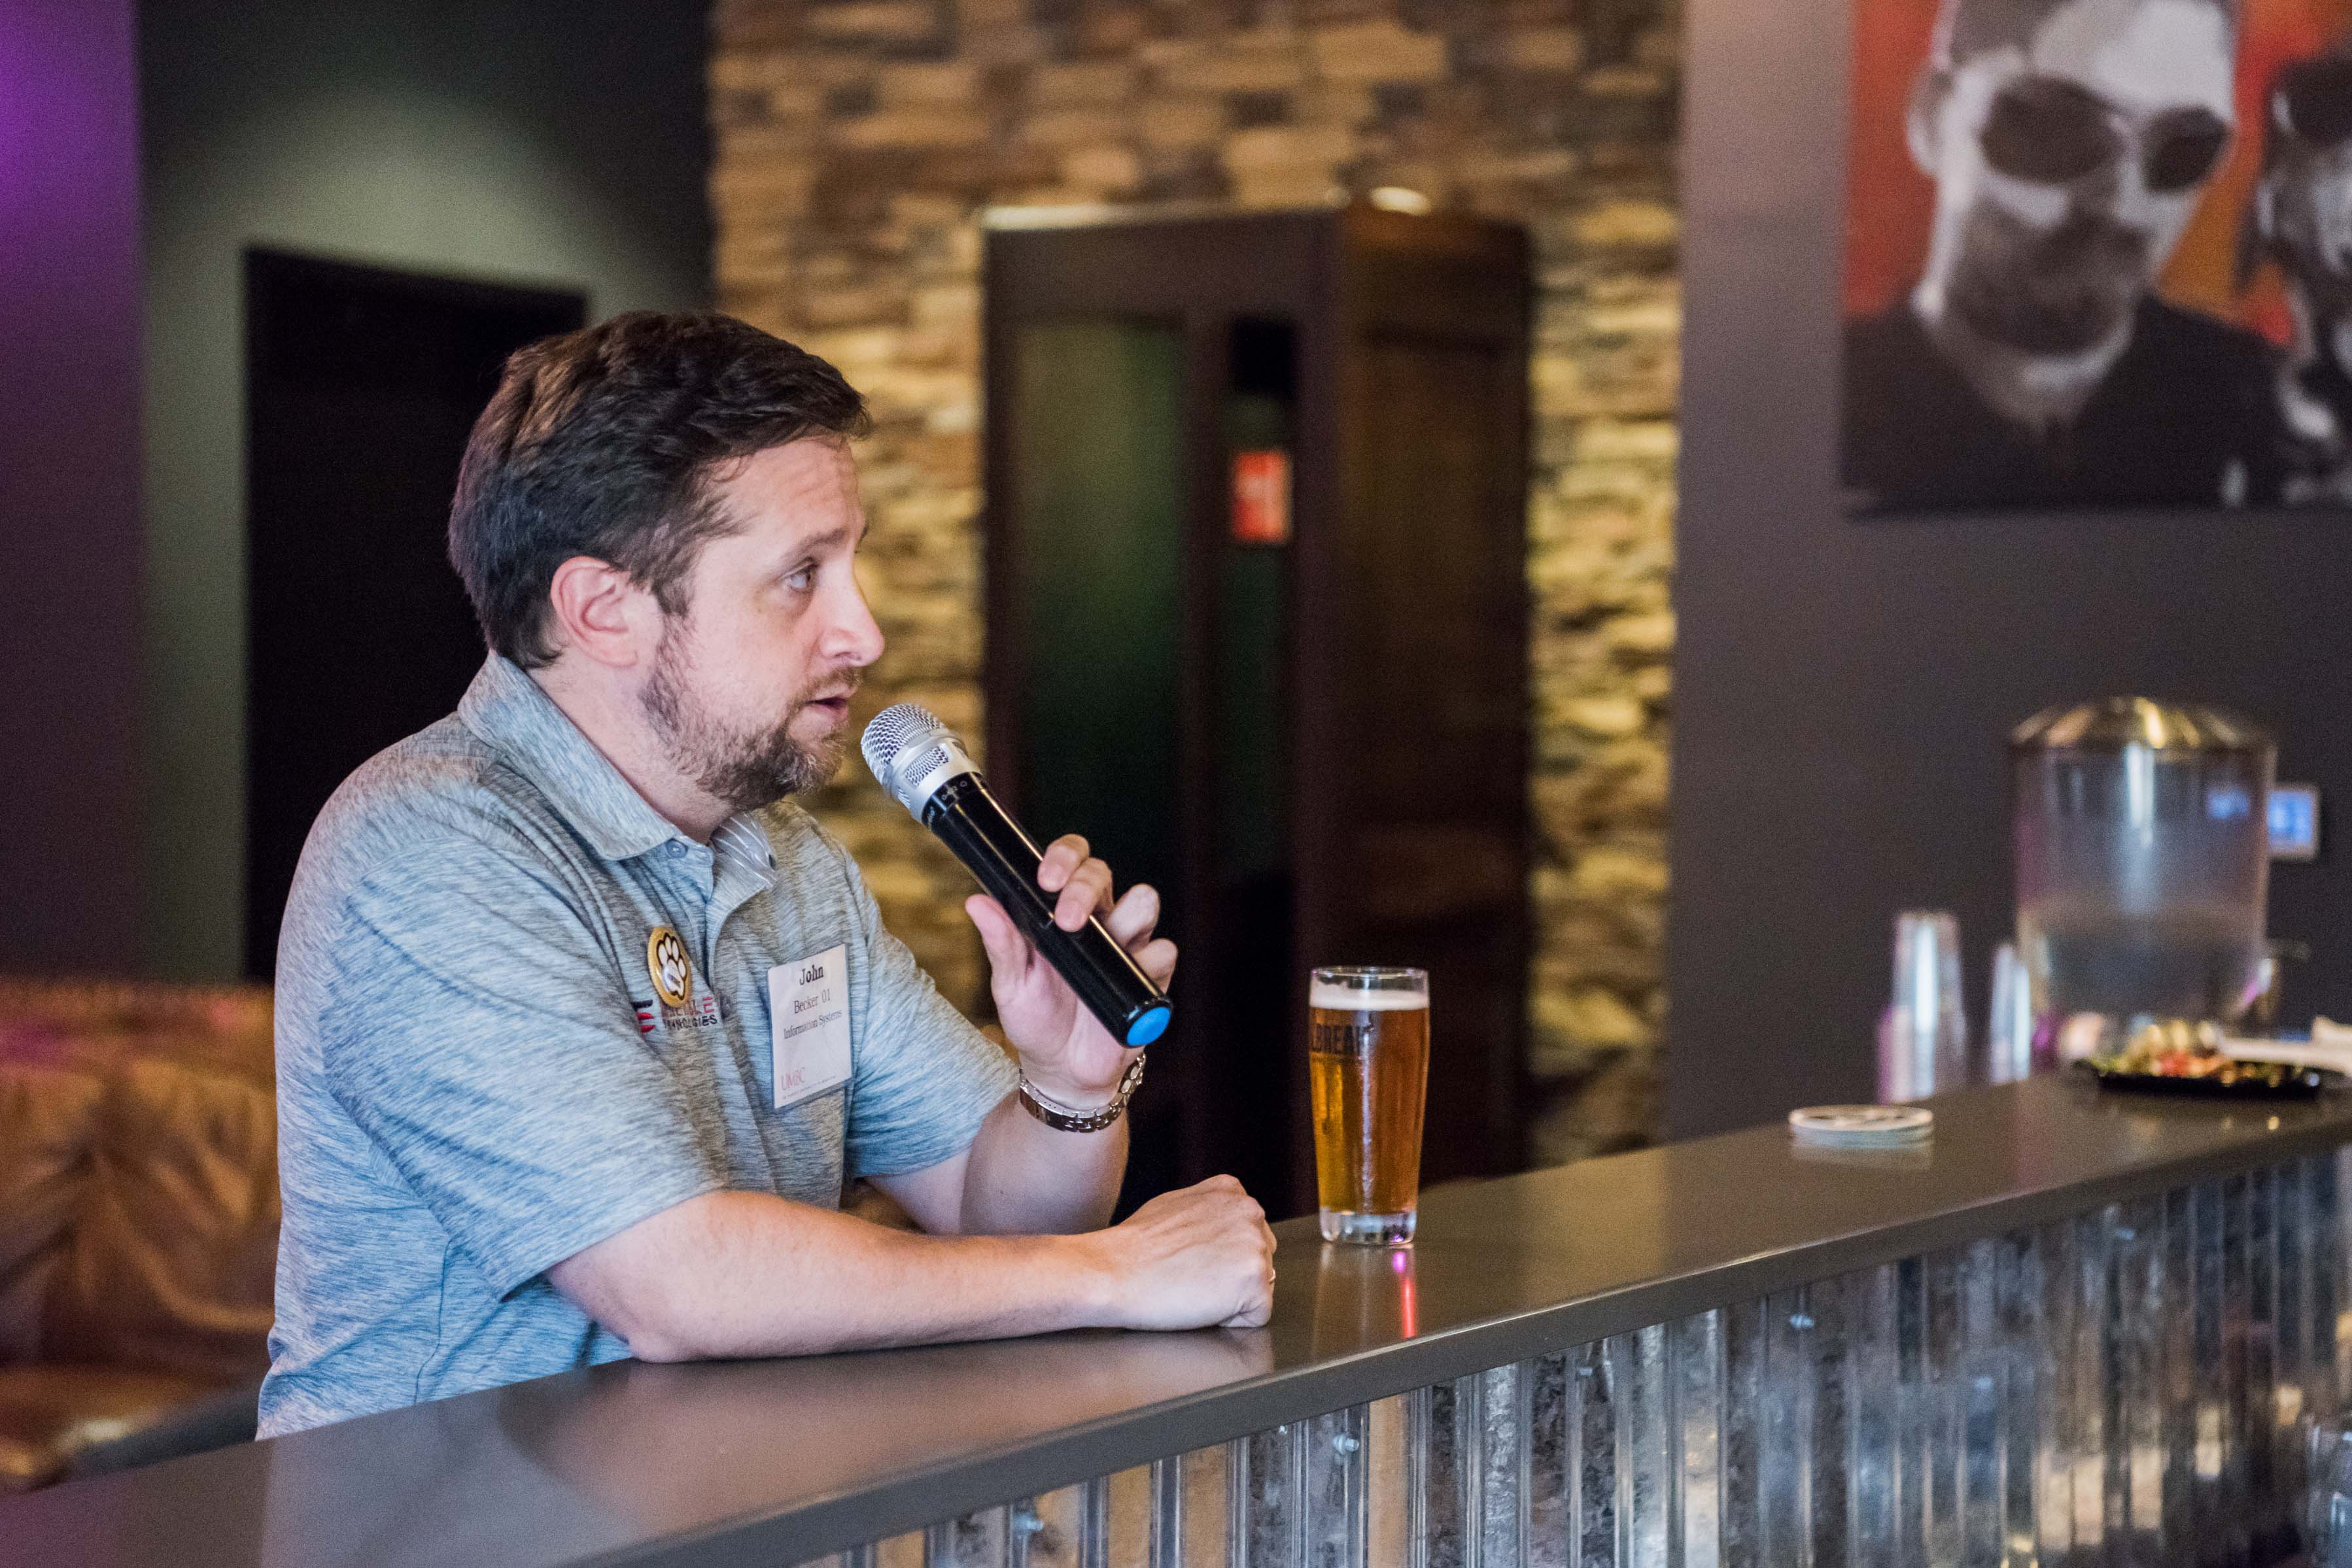 Man with microphone and beer glass gives speech for Jailbreak happy hour